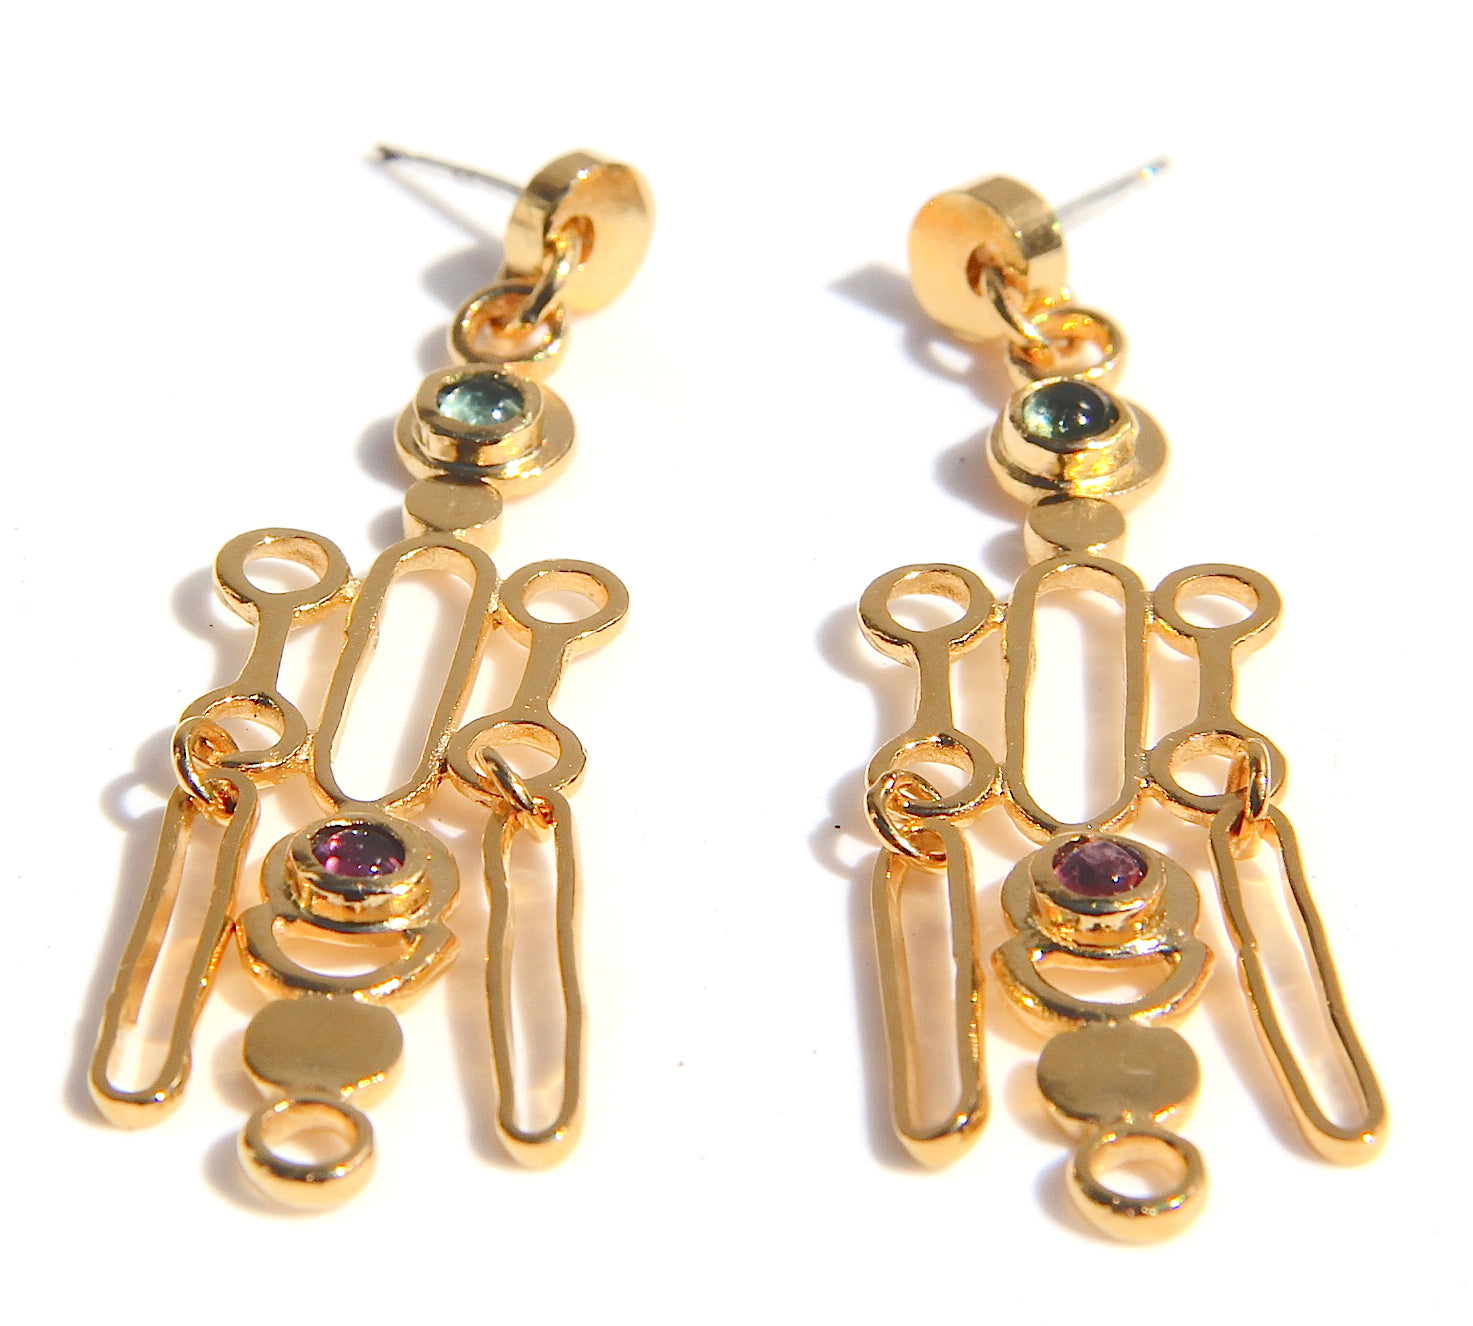 Lady J Jewelry Caledula Earrings